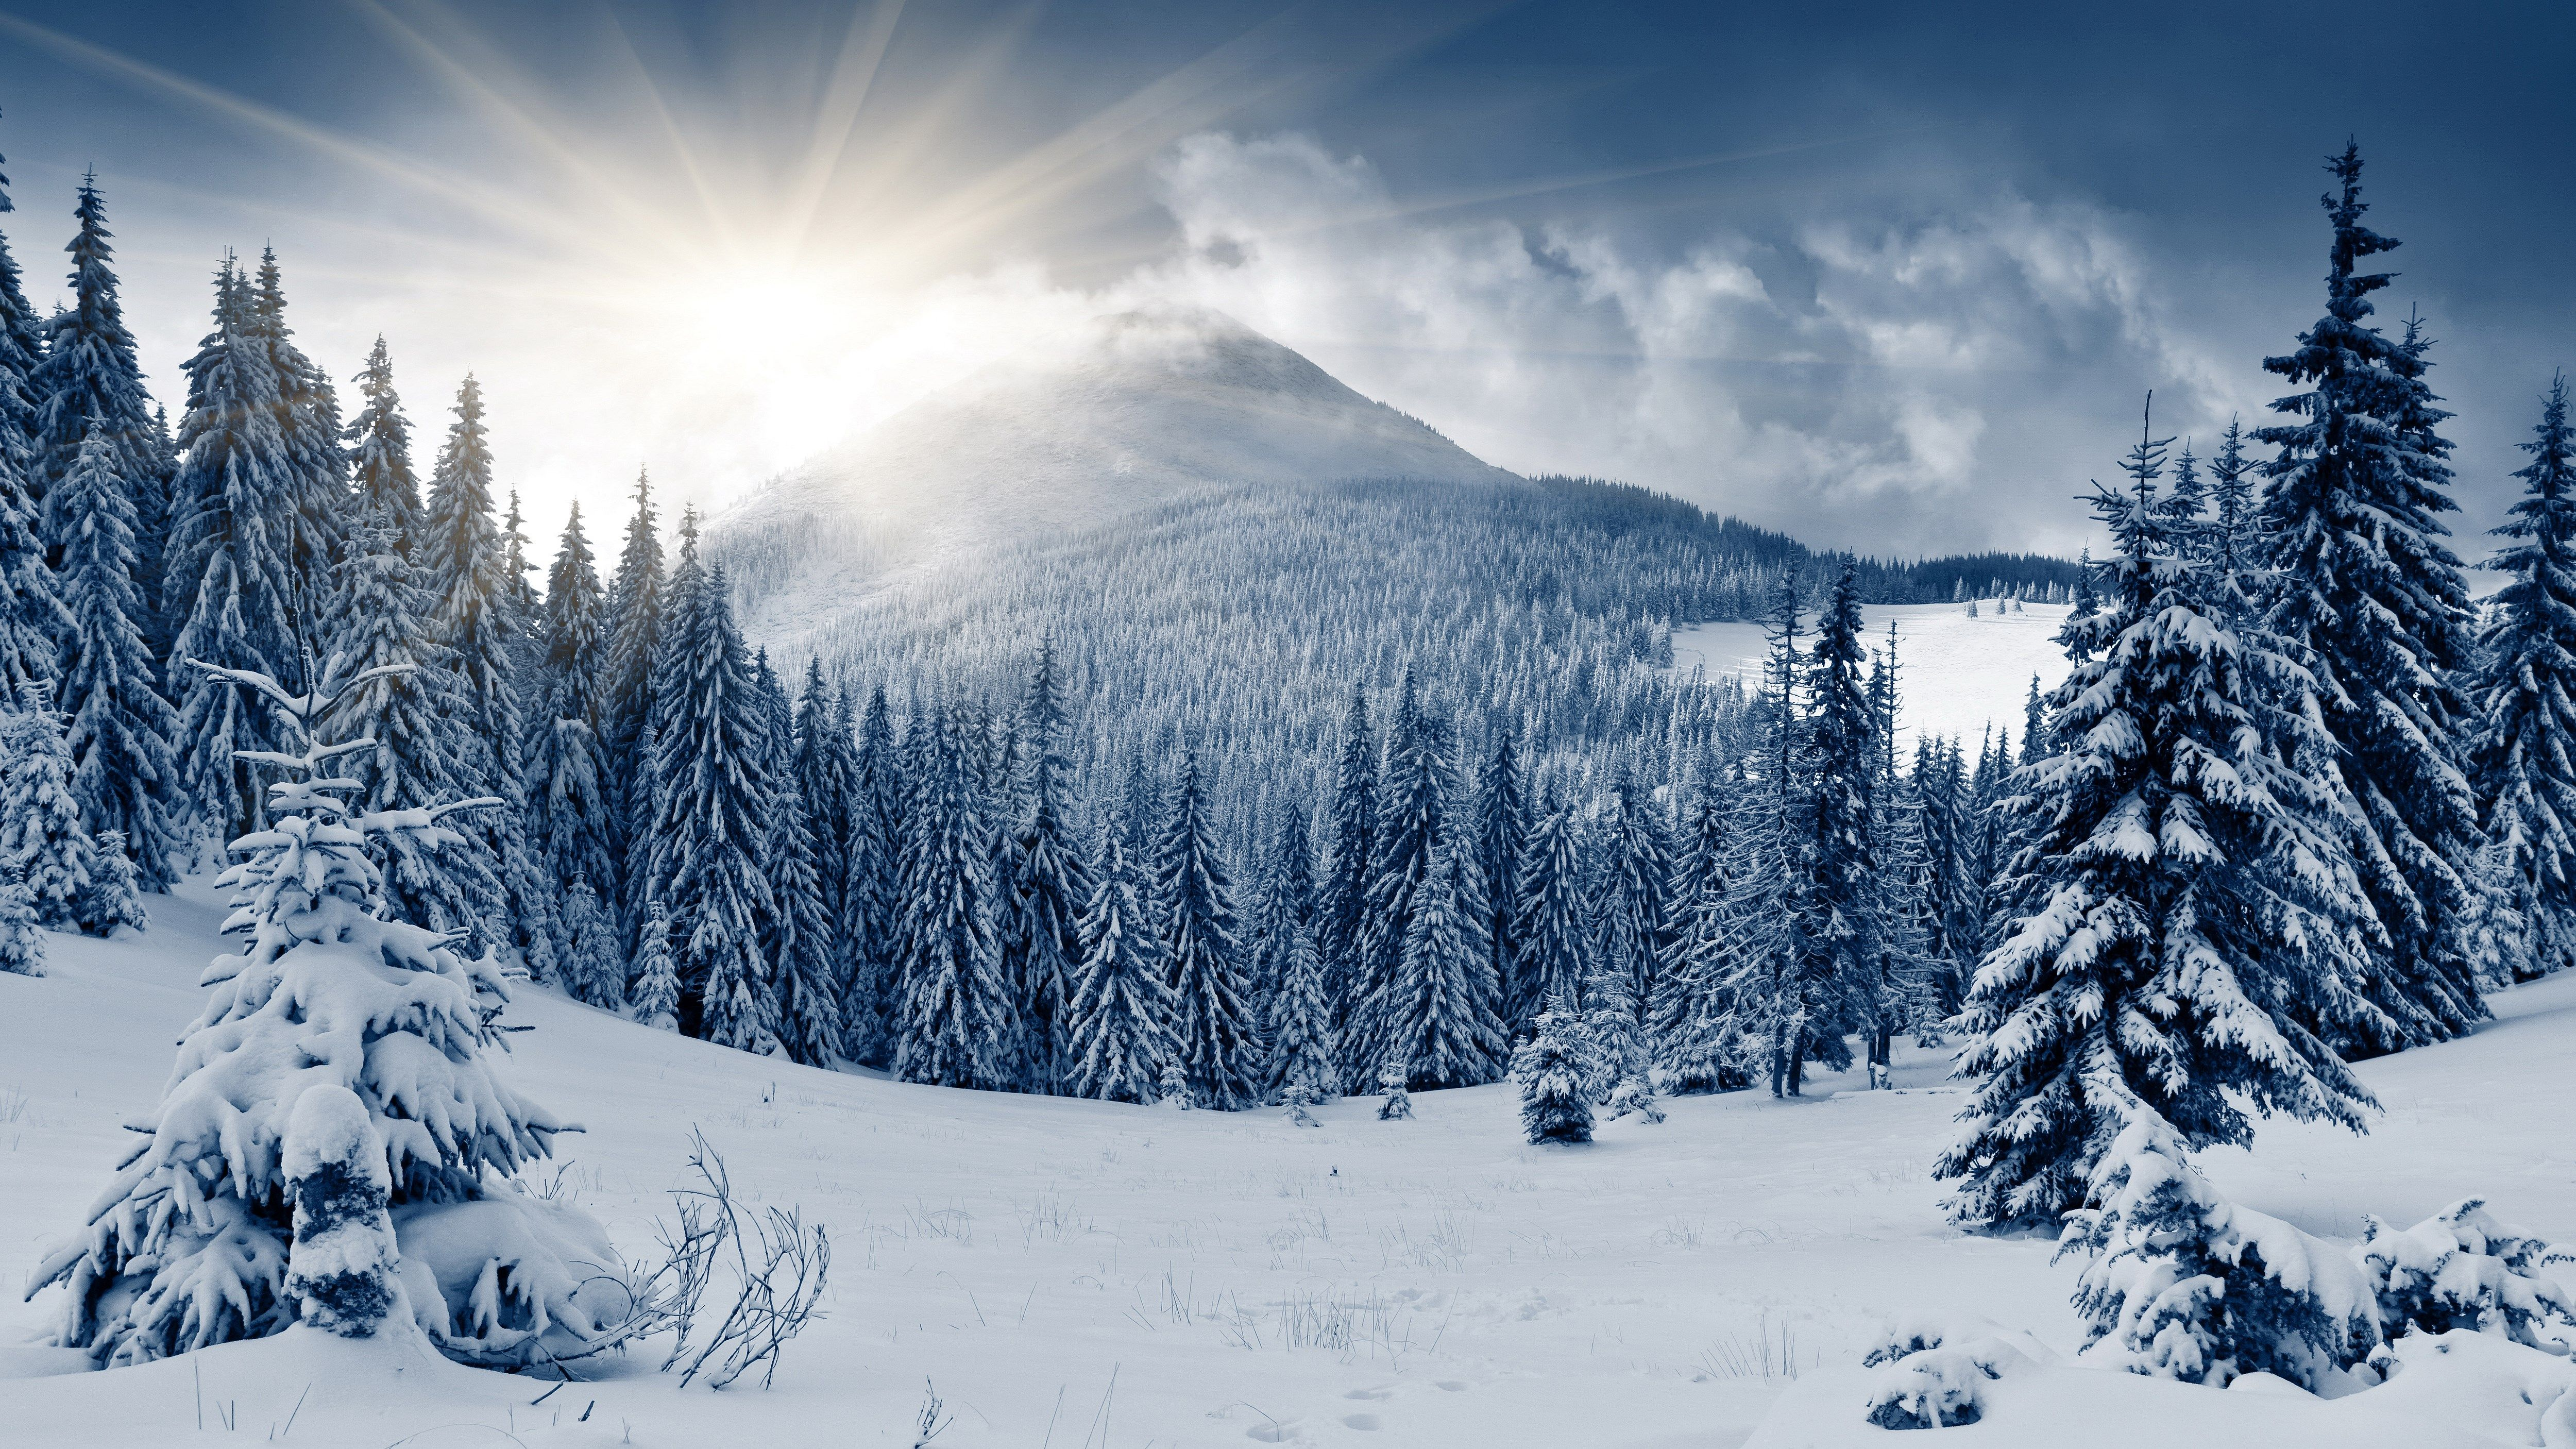 Winter scenes desktop backgrounds free 5000x2812 winterchristmas nature wallpaper snowy forest wallpapers iphone very high voltagebd Image collections